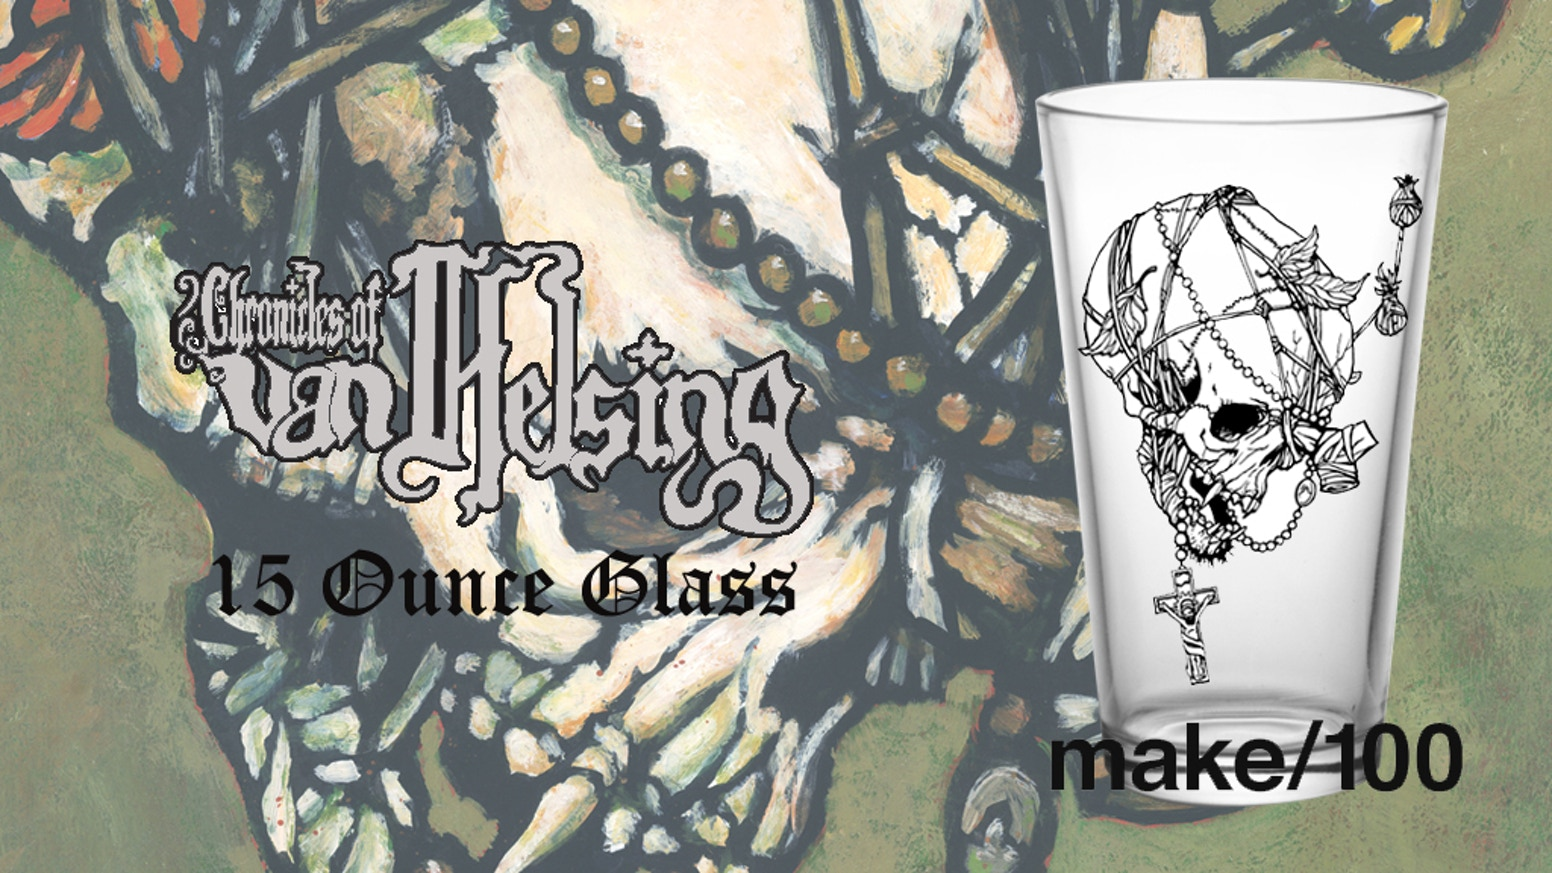 Chronicles of Van Helsing 15 Ounce Vampire Skull Glass.  Features a beautifully grotesque image illustrated by Tony Morgan.